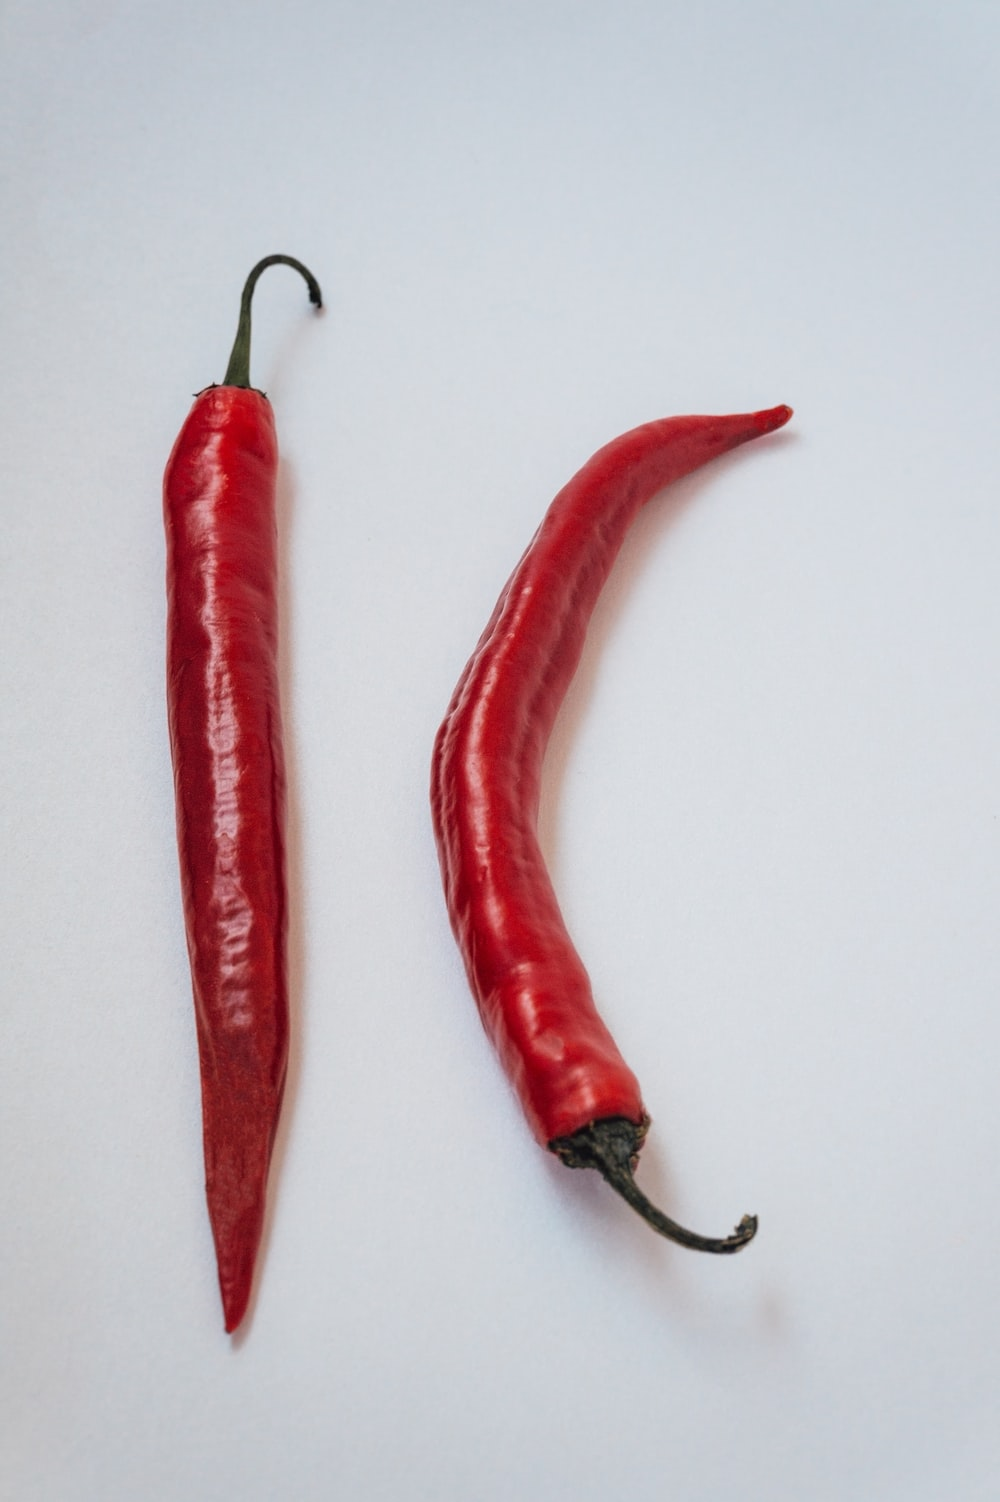 3 red chili on white surface